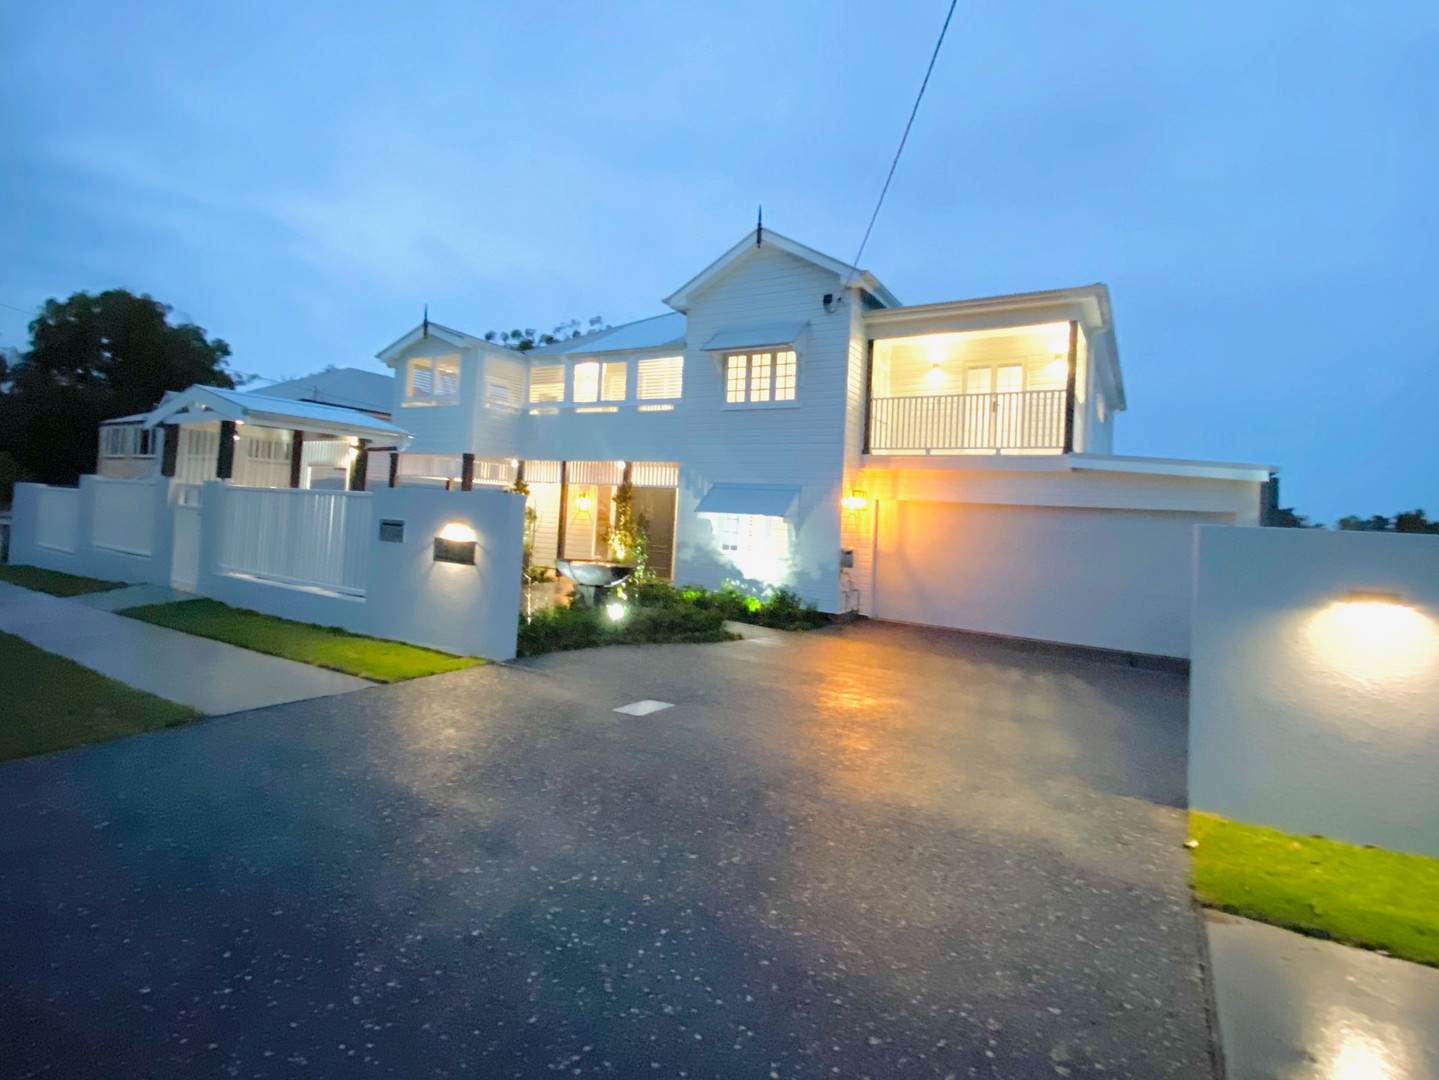 cobb-and-co-projects-brisbane-builder-clayfield-renovation-extension-house-lift-build-under-queenslander-3